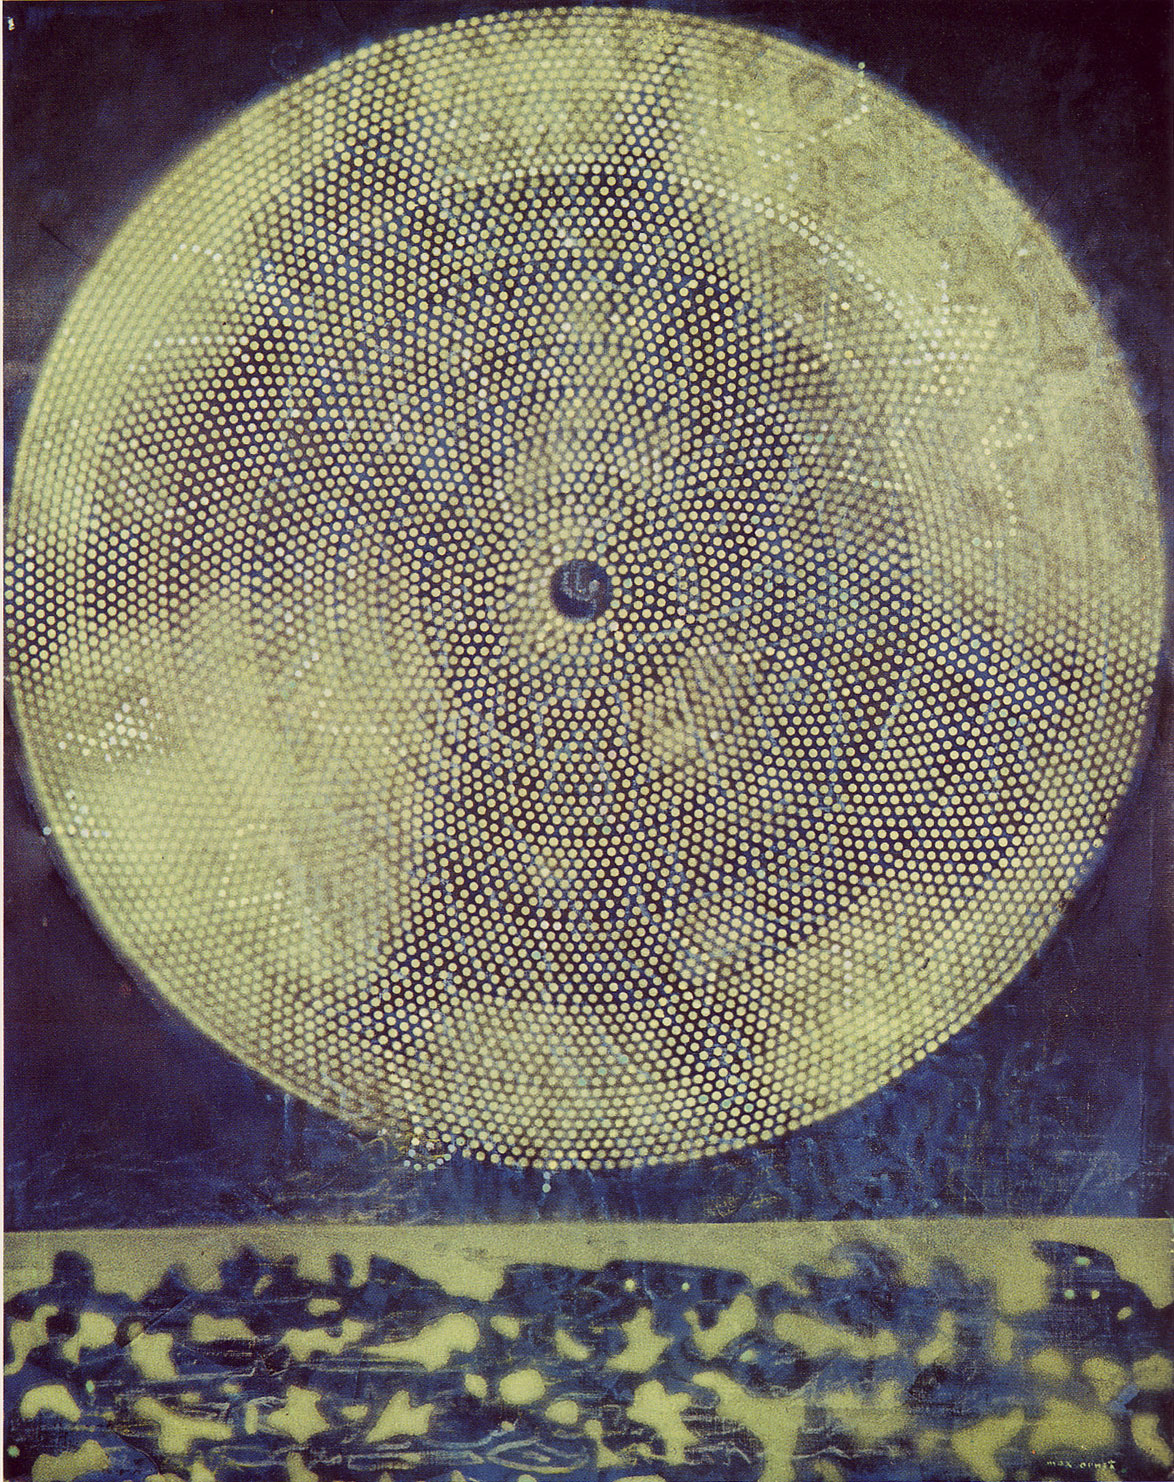 birth-of-a-galaxy-max-ernst-1969-1362258500_org